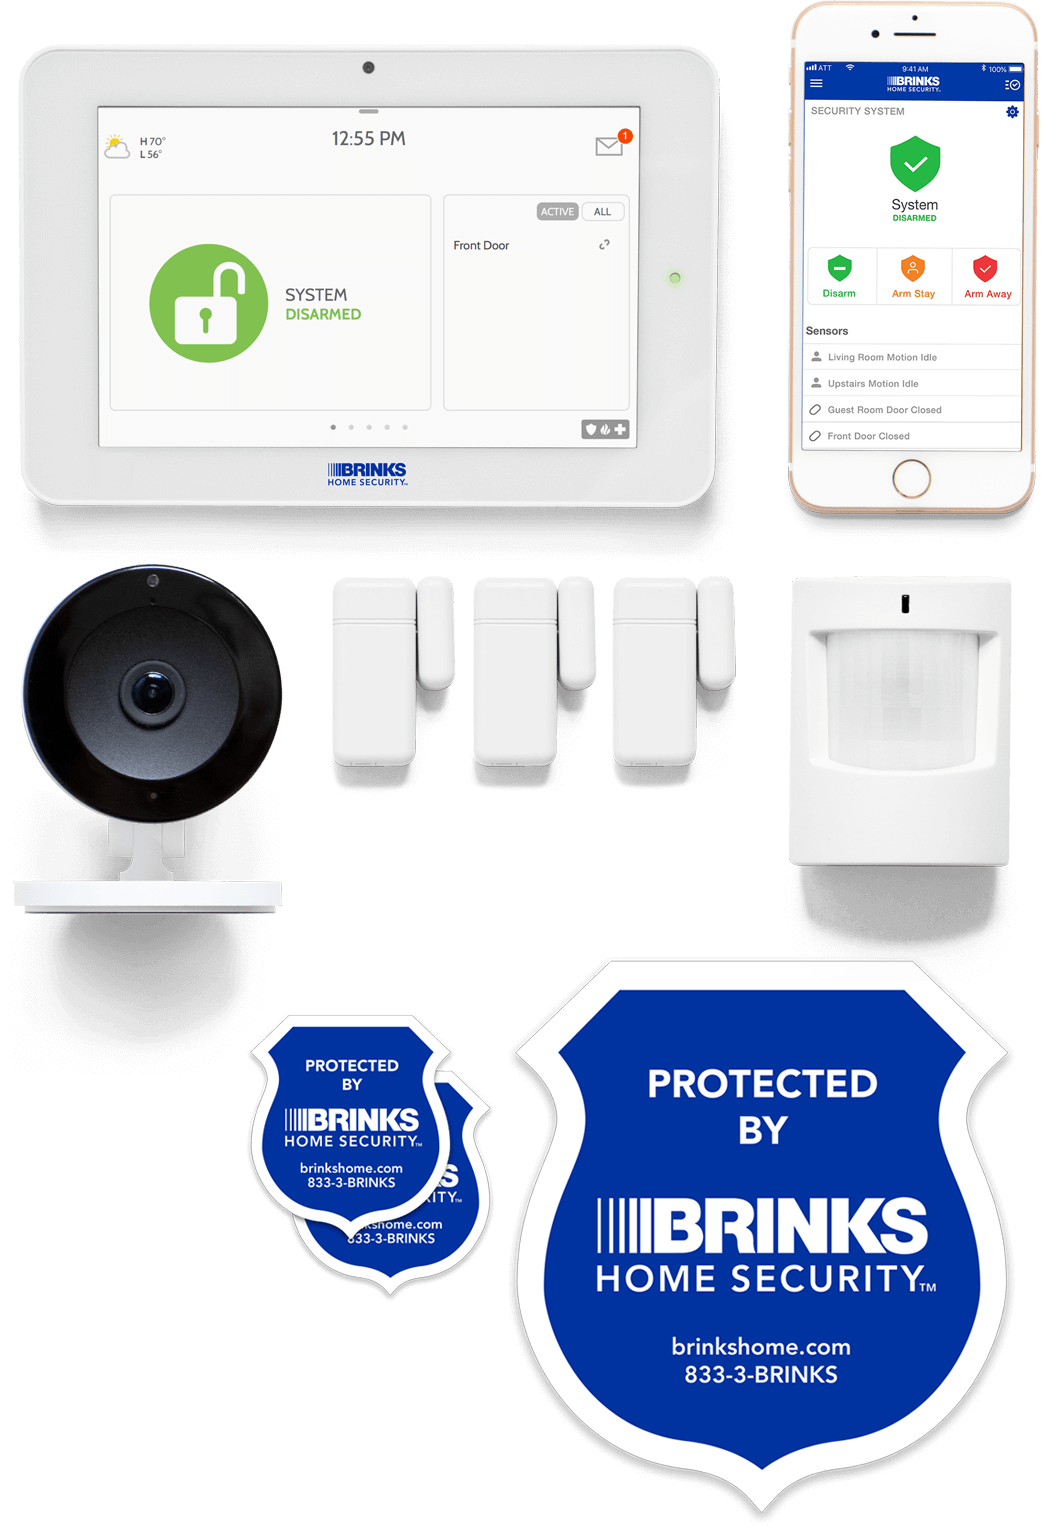 There S More With Brinks Home Security Wireless Security System Home Security Nest Labs